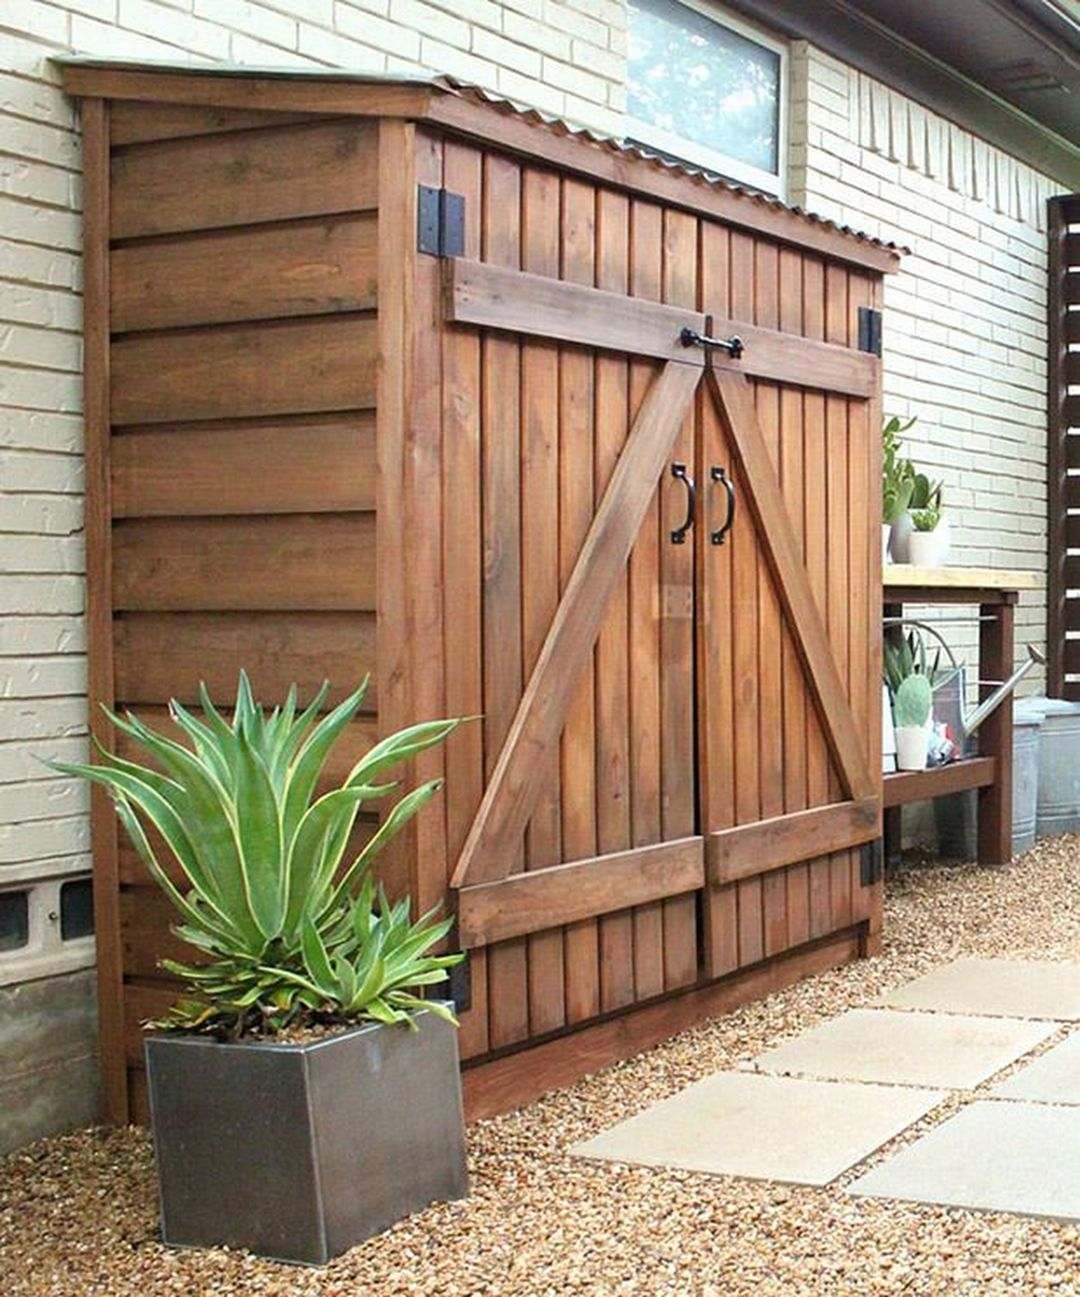 30 Brilliant Small Garden Shed Storage Ideas images